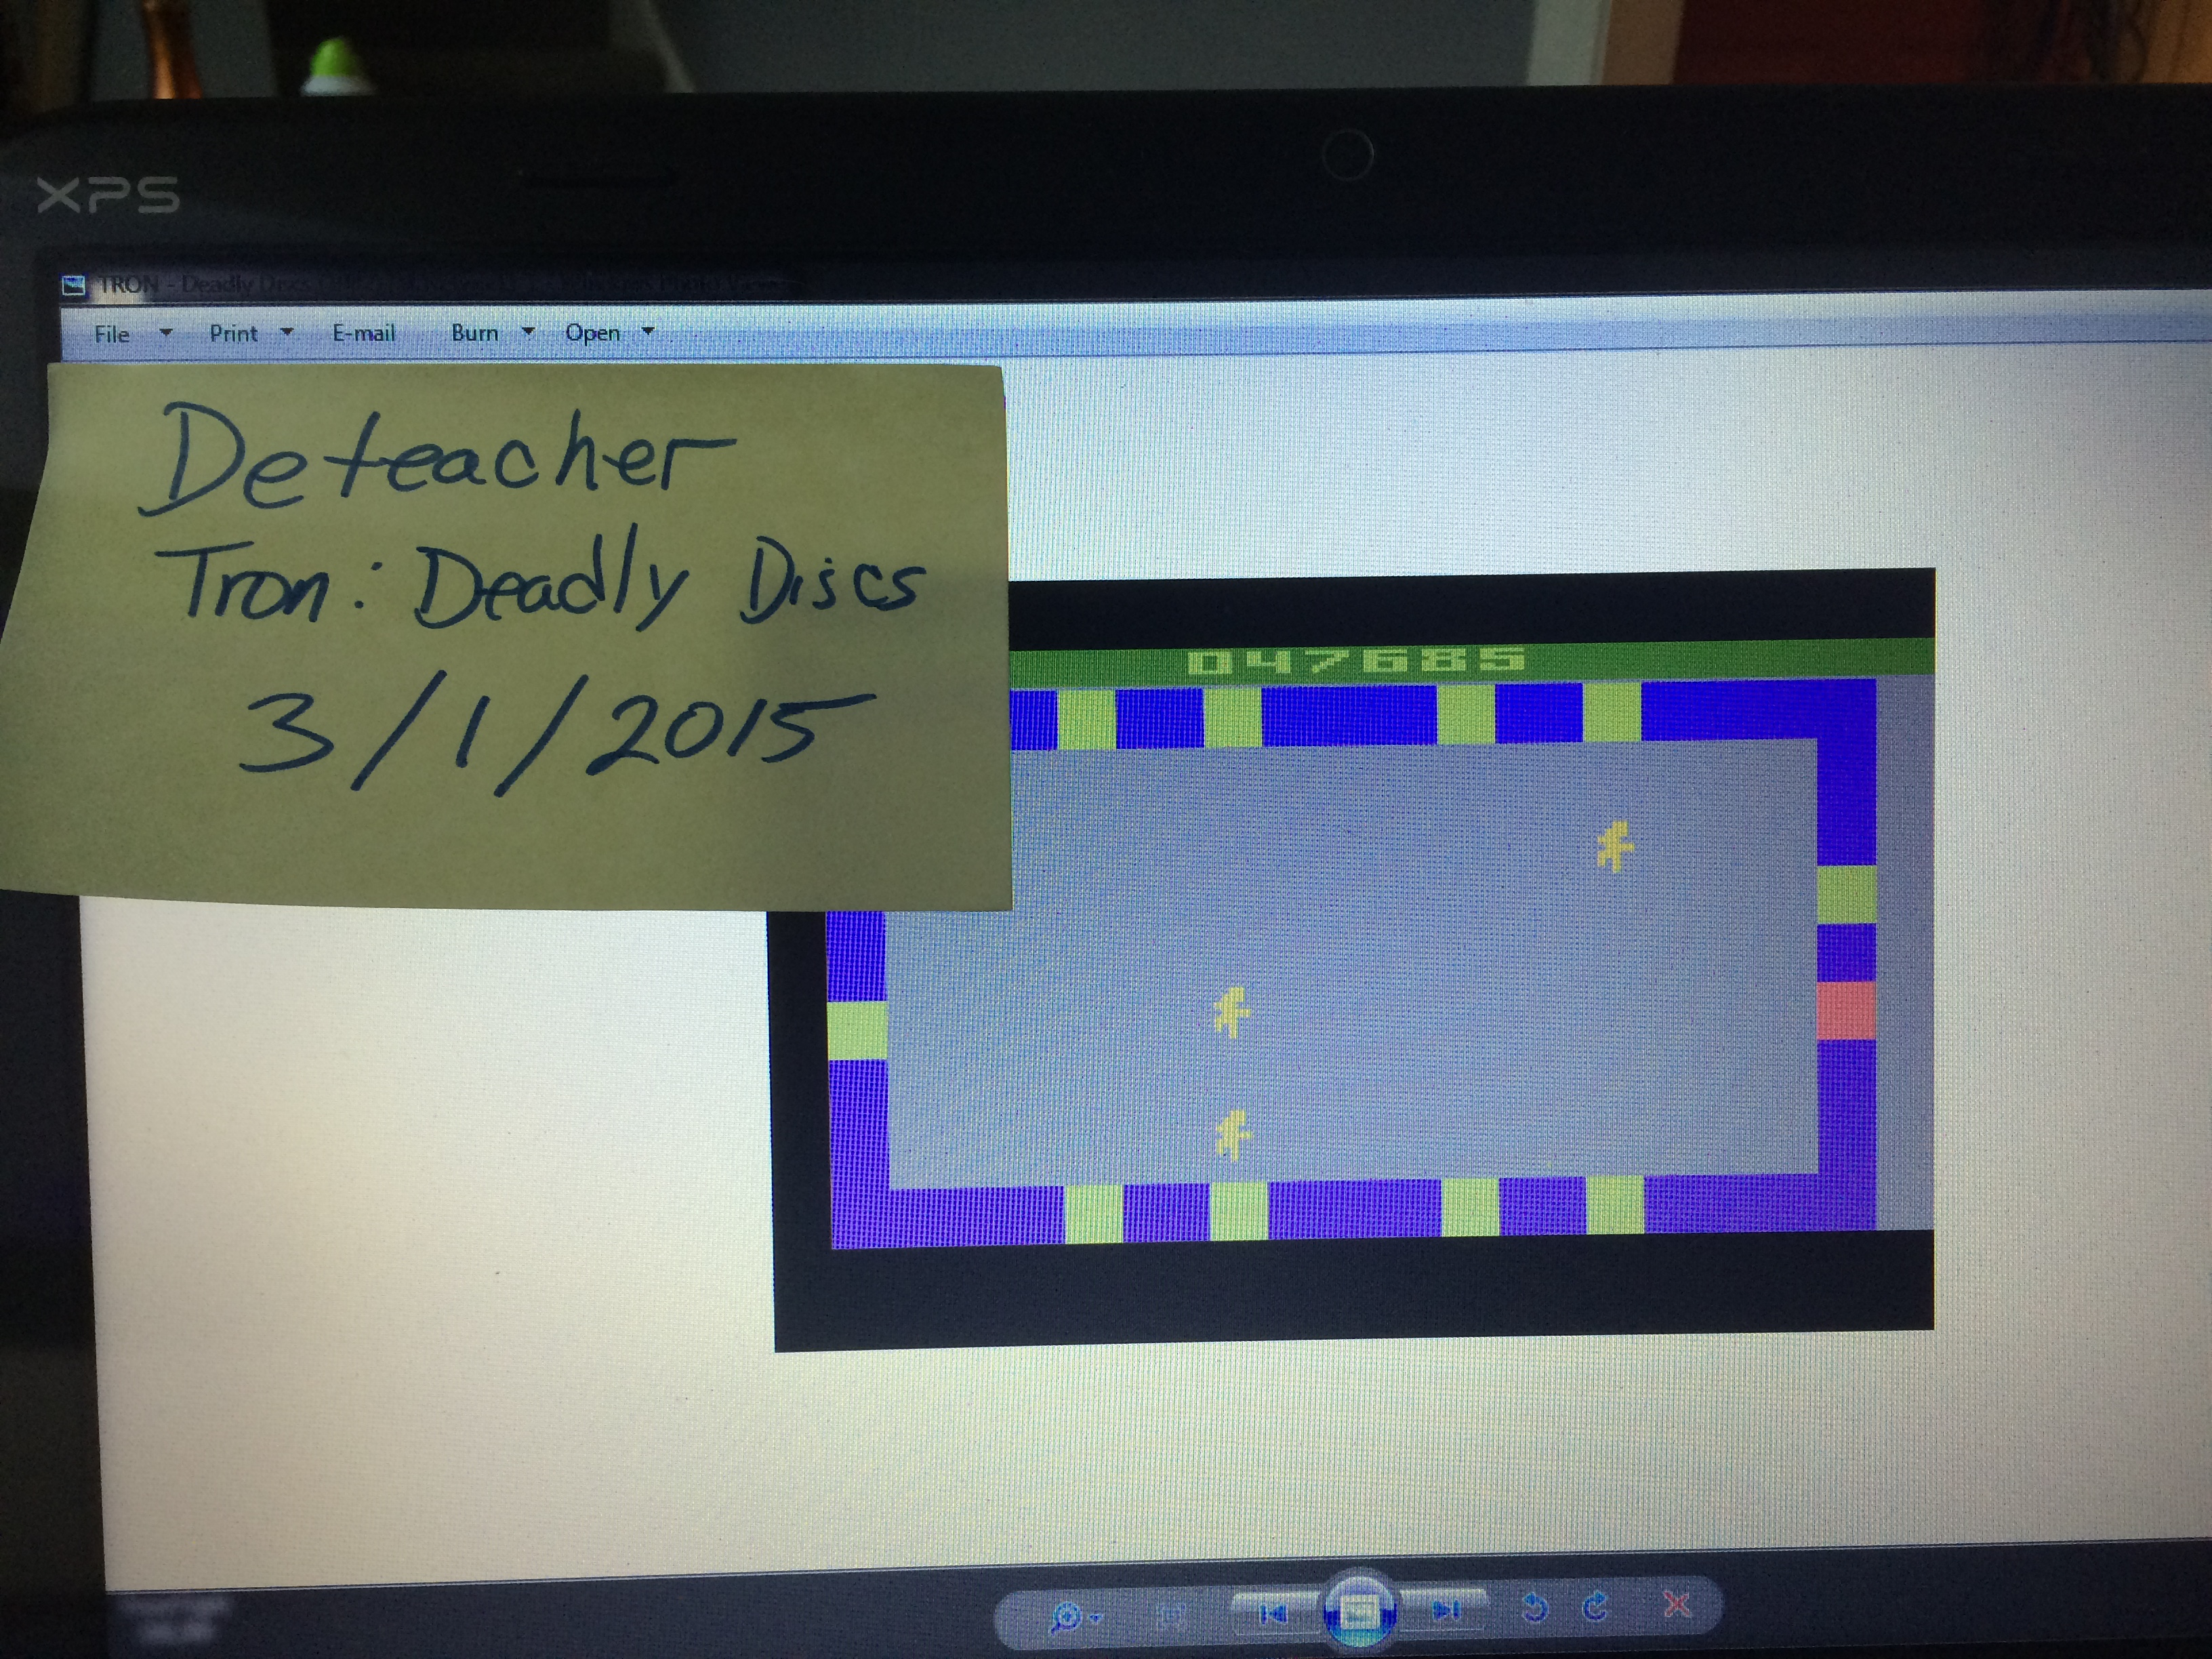 Deteacher: Tron: Deadly Discs (Atari 2600 Emulated Novice/B Mode) 47,685 points on 2015-03-01 13:34:43